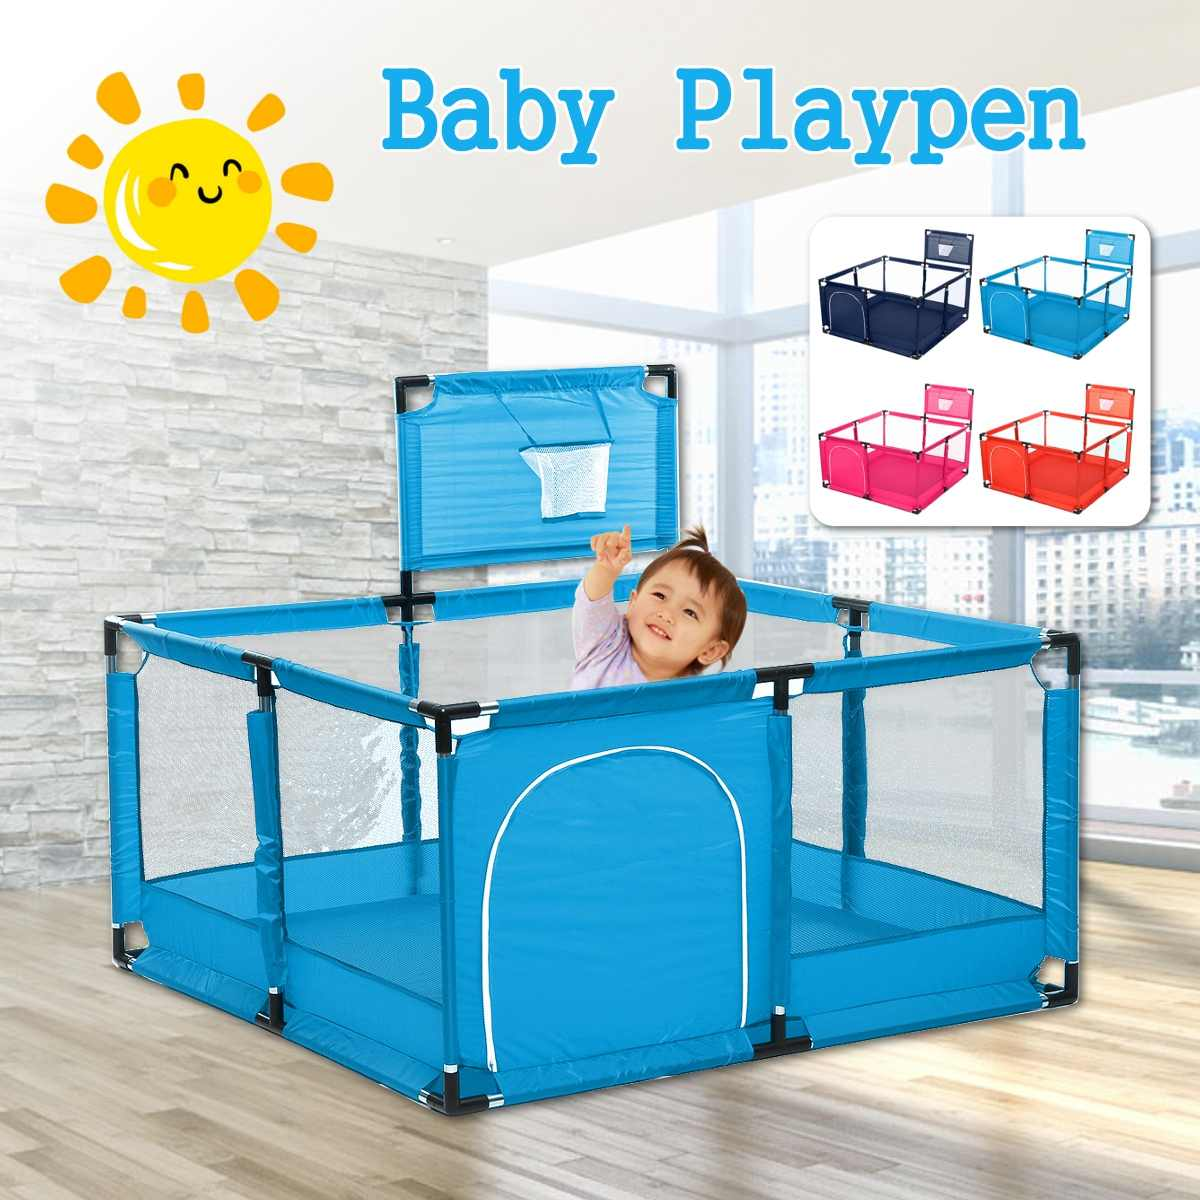 Bioby Baby Playpen Children Toddler Kids Safety Fence Indoor Outdoor Play Ocean Ball Pool Baby Playground Barrier With Basket